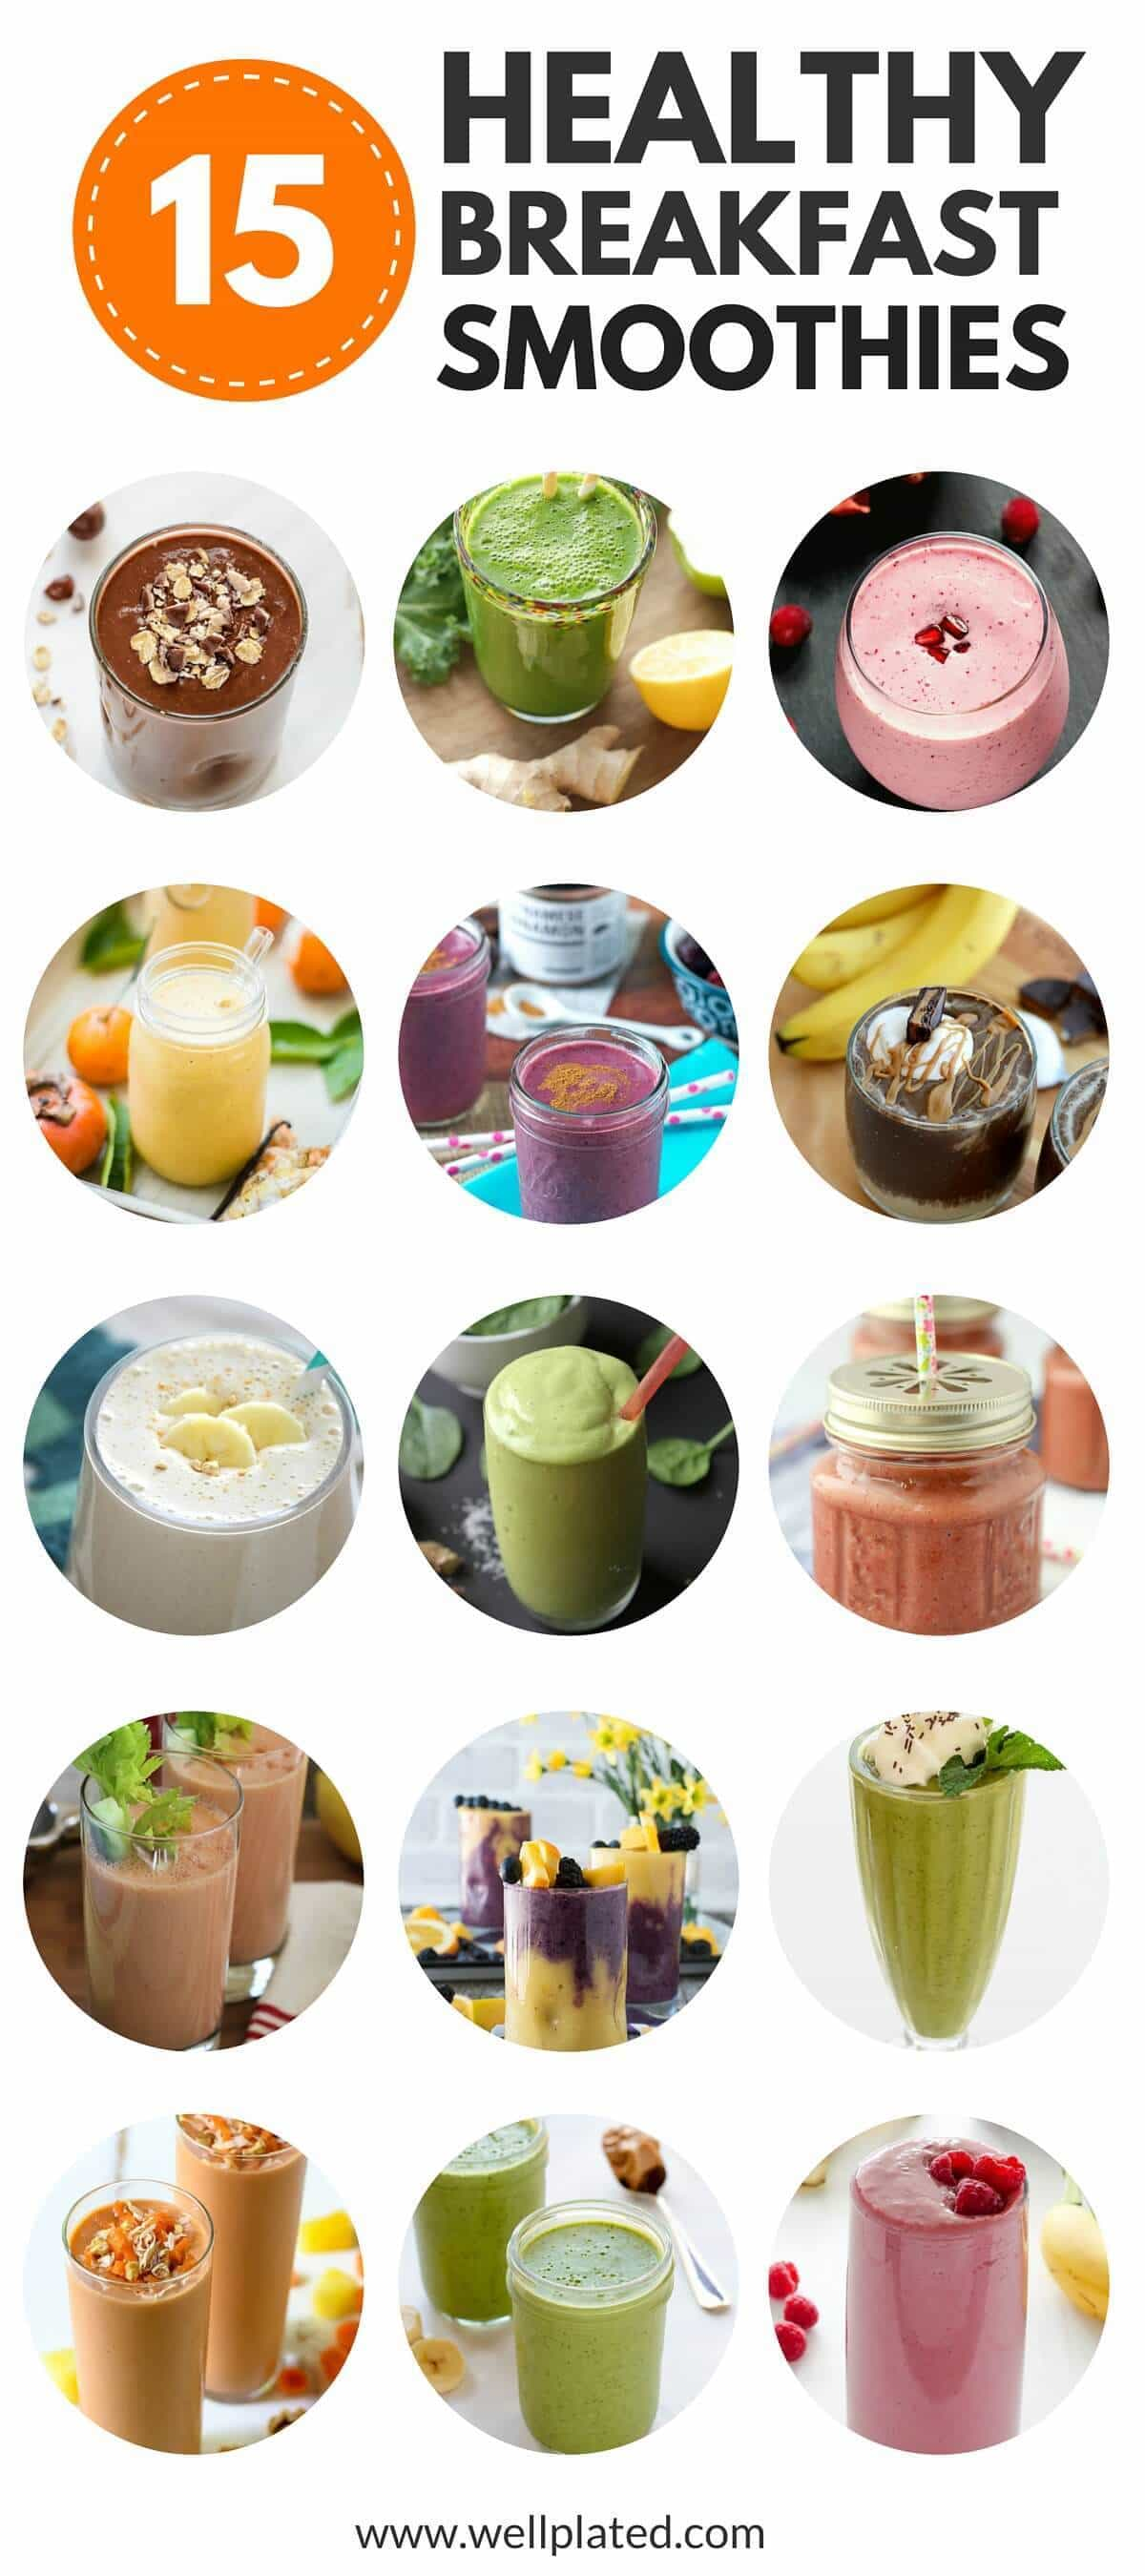 photo collage of 15 healthy breakfast smoothies